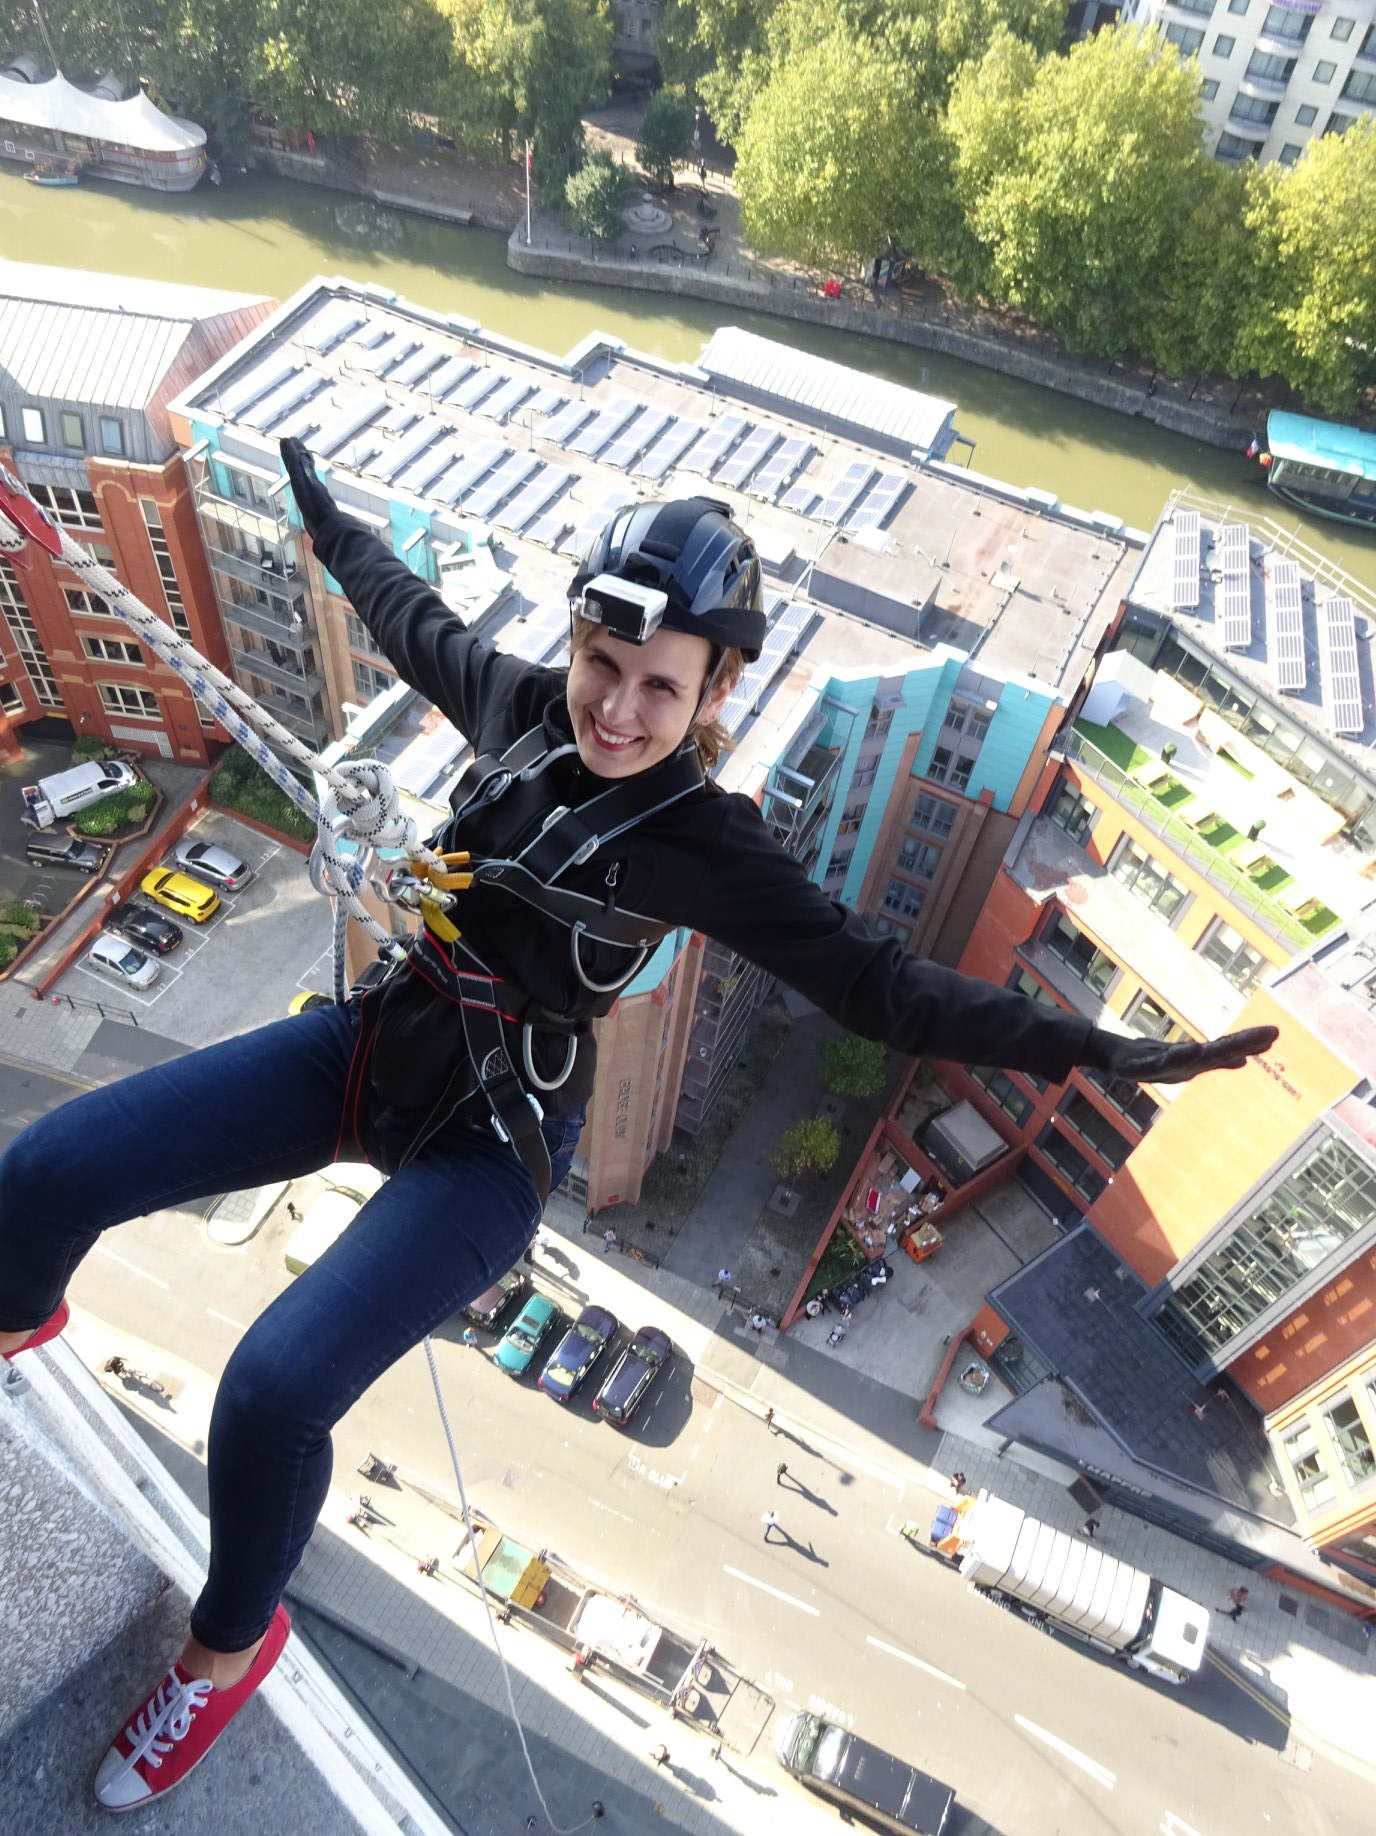 Bristol Charity Abseil Event